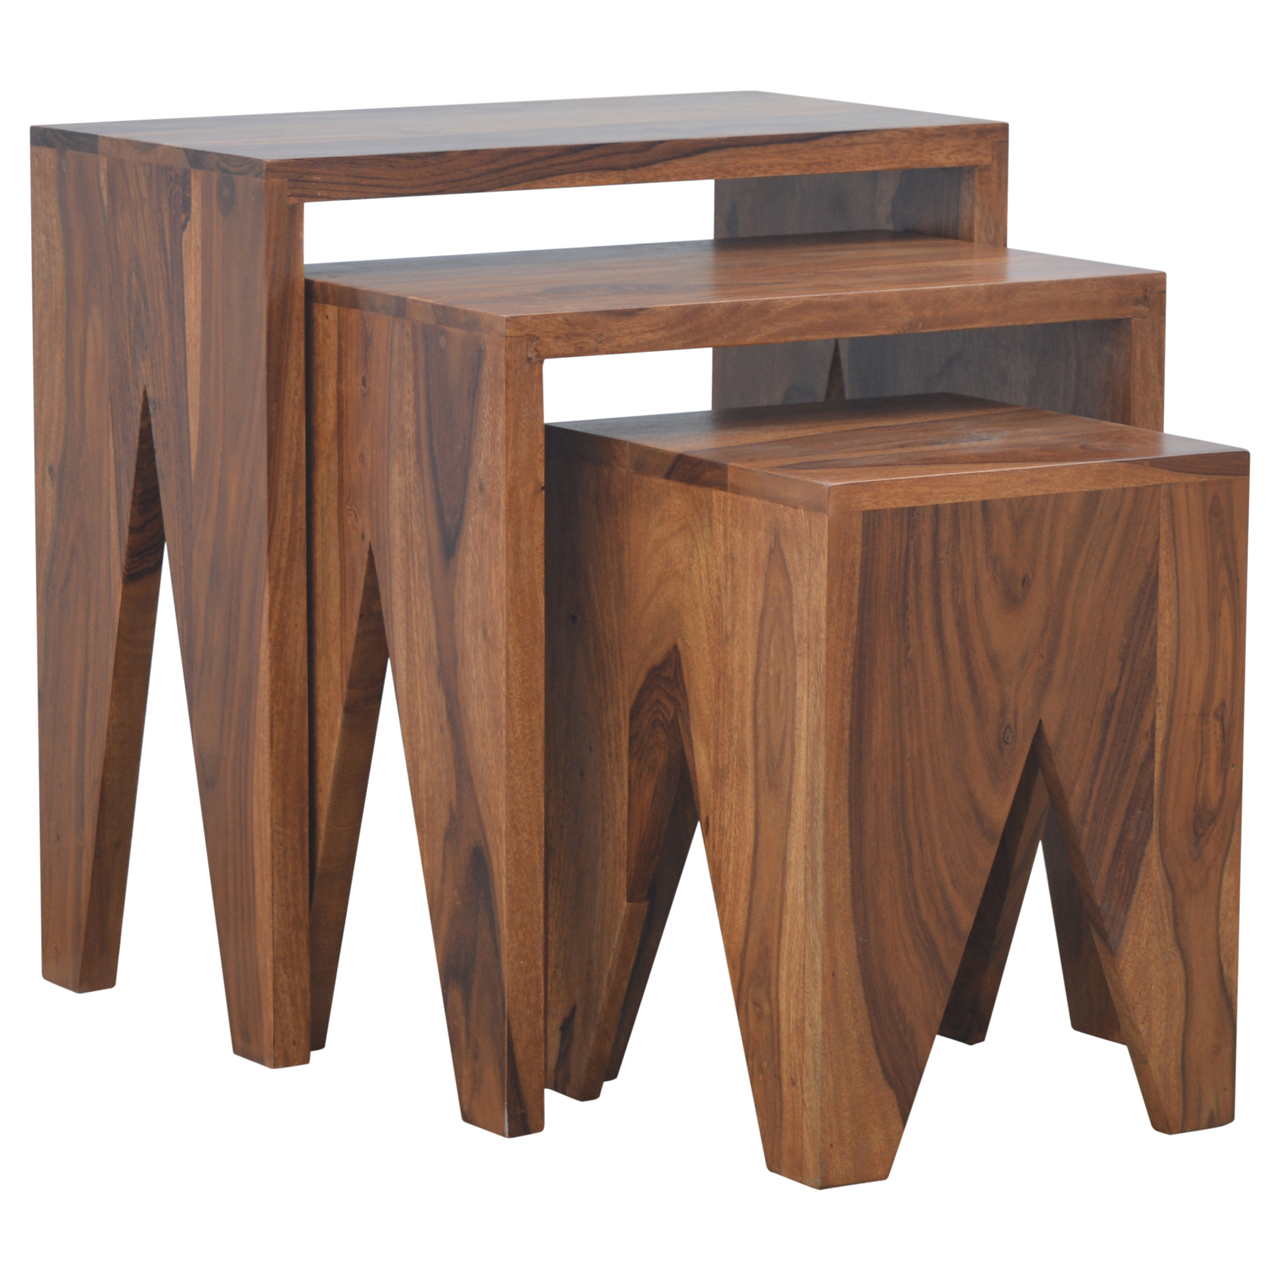 IN191 Solid Sheesham Wood Set of 3 Cut Out Nesting Table